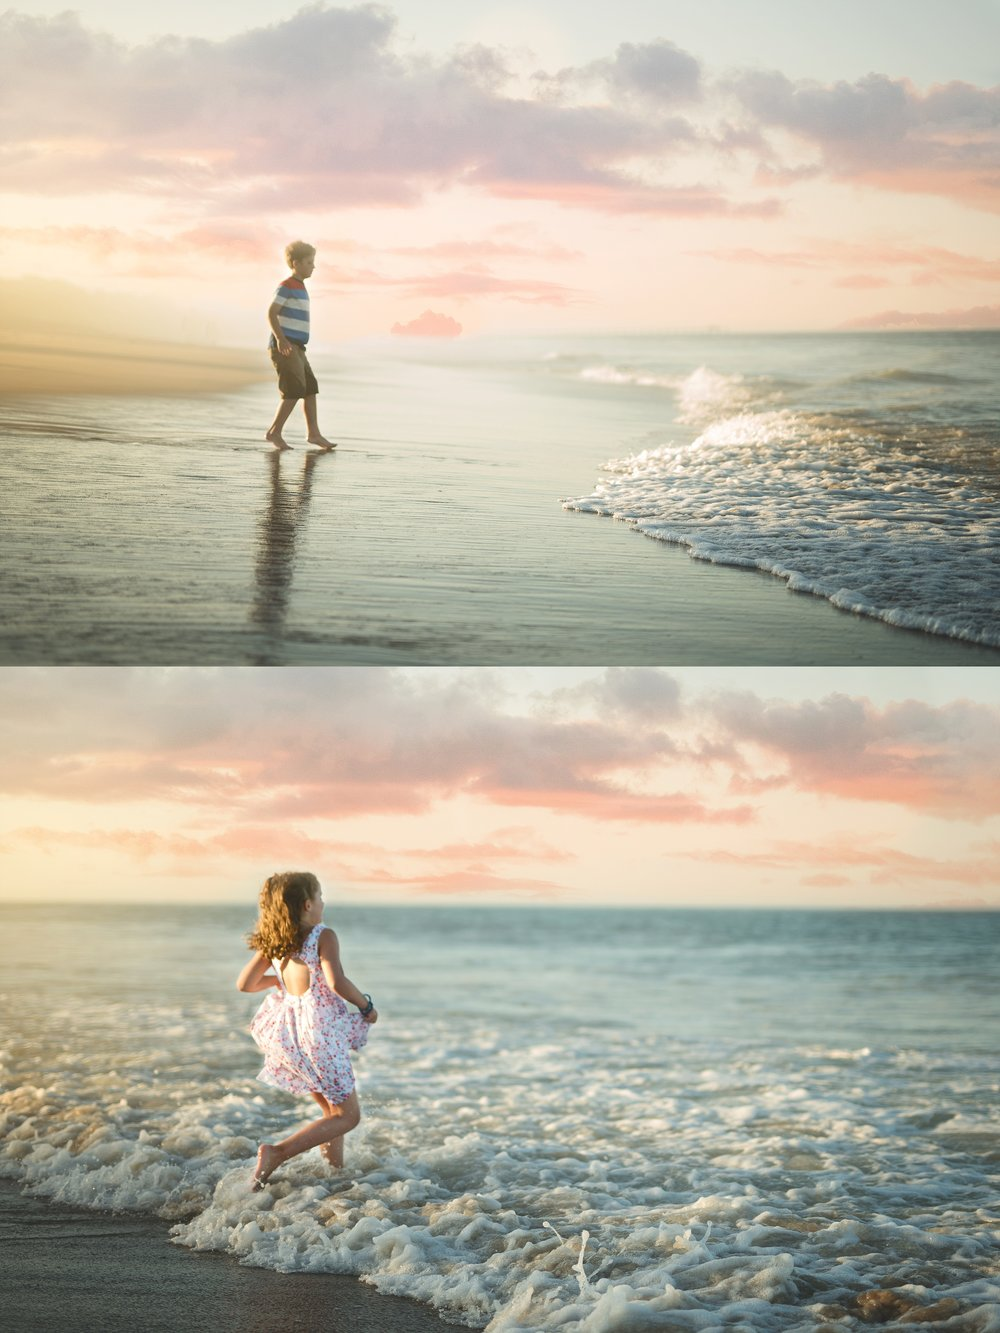 beach-family-photography-siblings-playing-in-water-outerbanks-kate-montaner-photography-loudoun-family-and-childrens-photographer